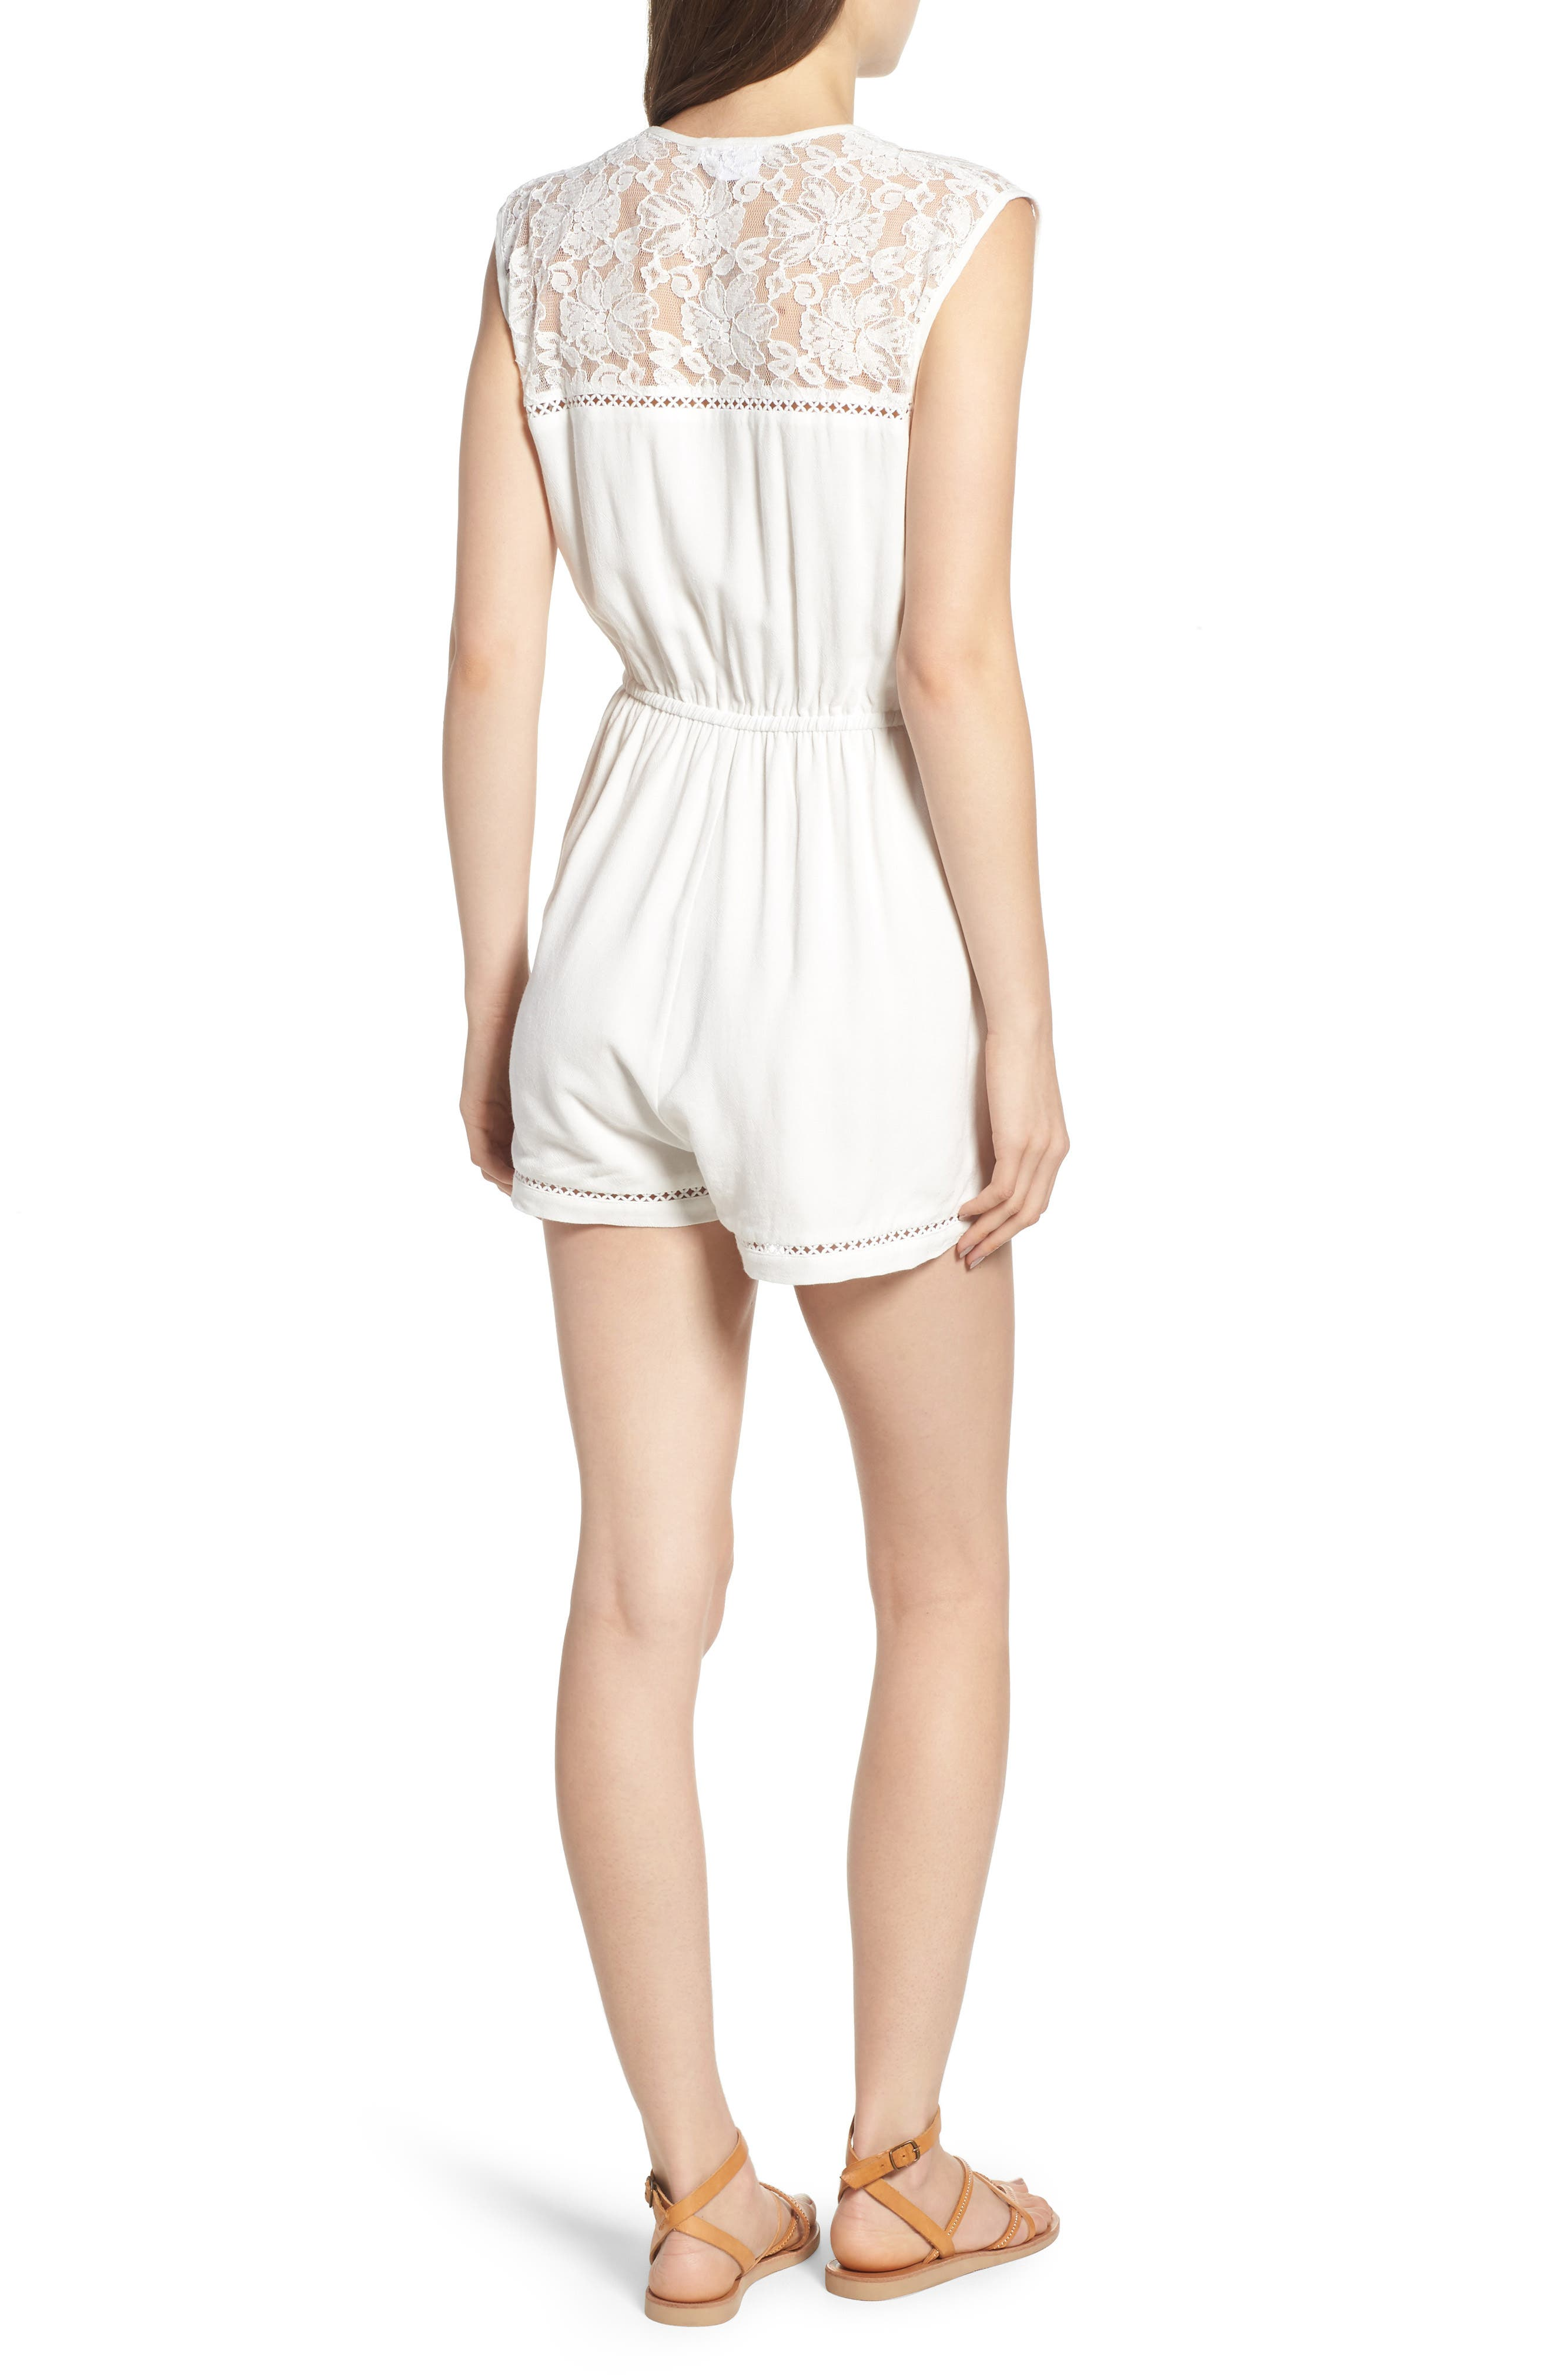 Oceans Away Lace Panel Romper,                             Alternate thumbnail 3, color,                             White